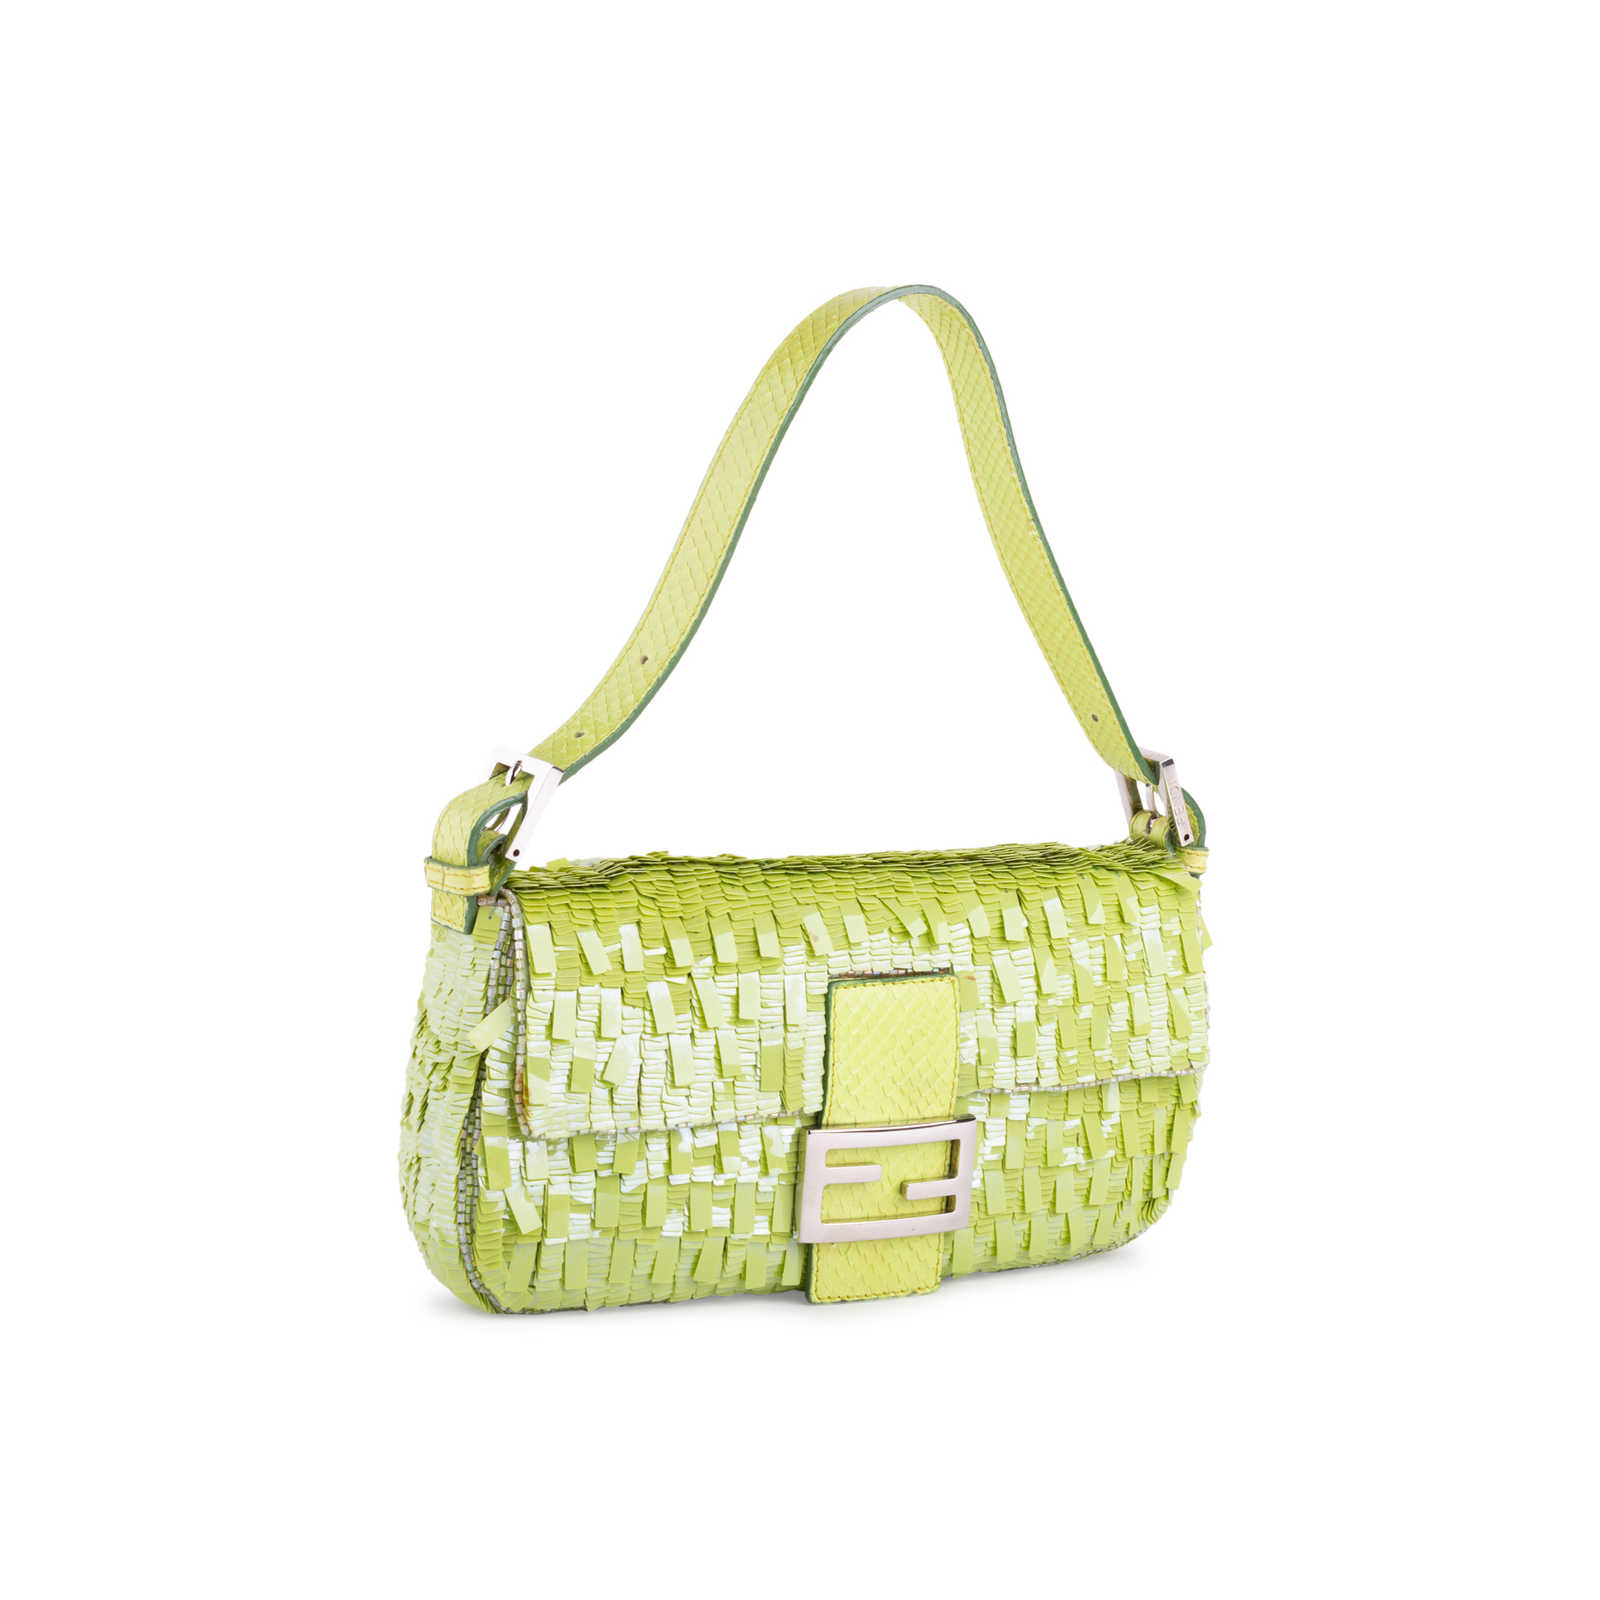 b029b9585afb ... Authentic Second Hand Fendi Sequinned Snakeskin Baguette Bag  (PSS-351-00023) ...